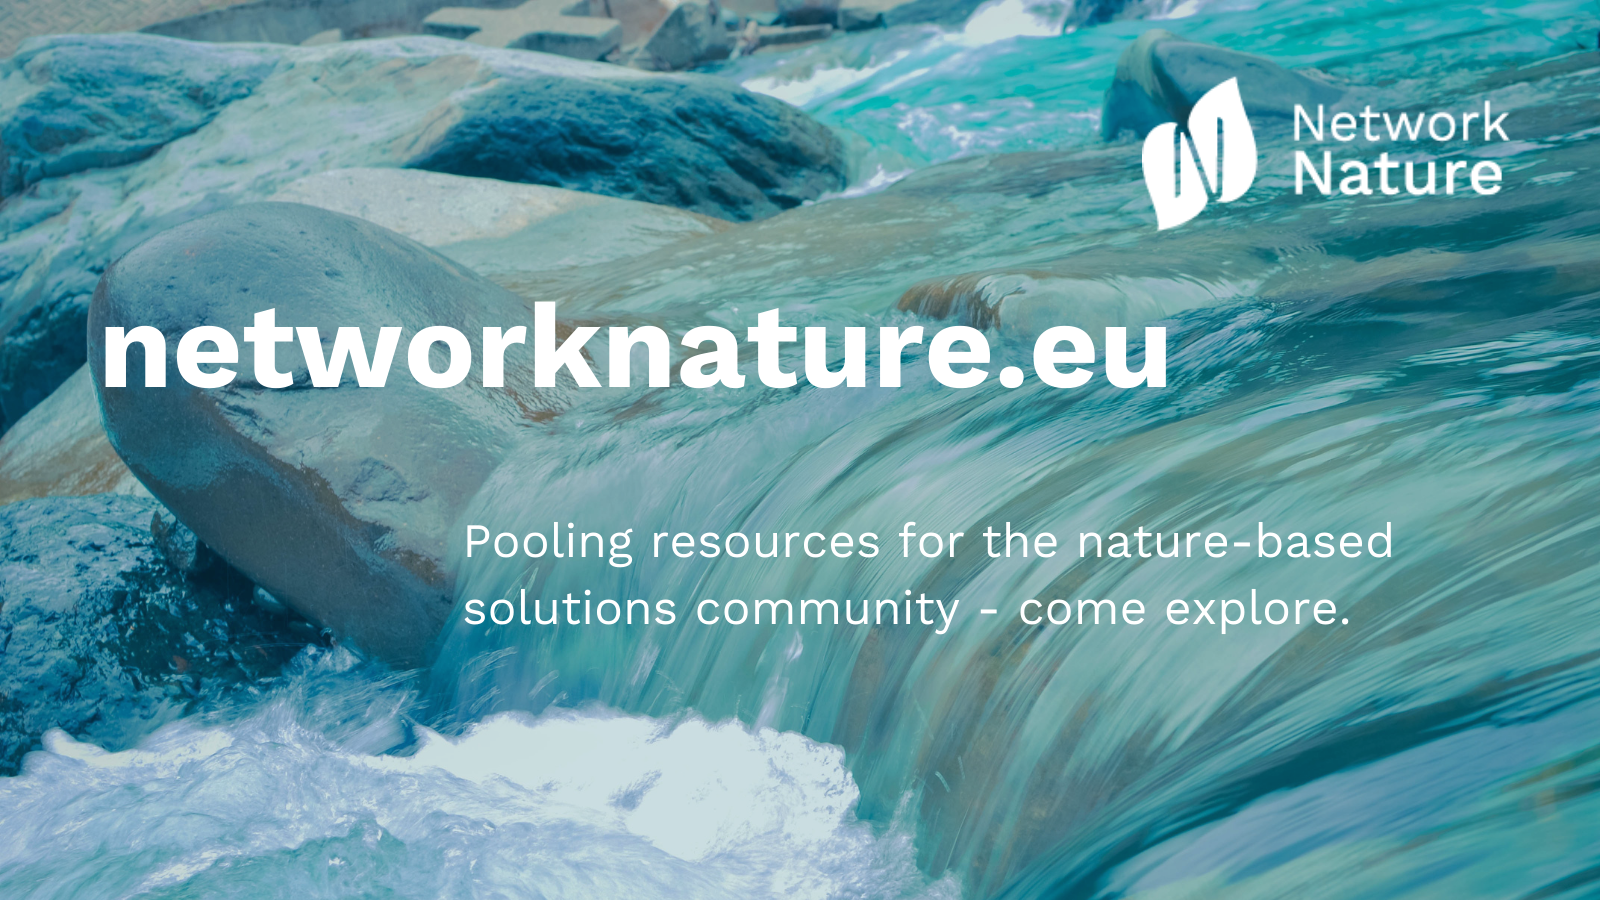 IFLA Europe joins NetworkNature's Stakeholder Advisory Board!